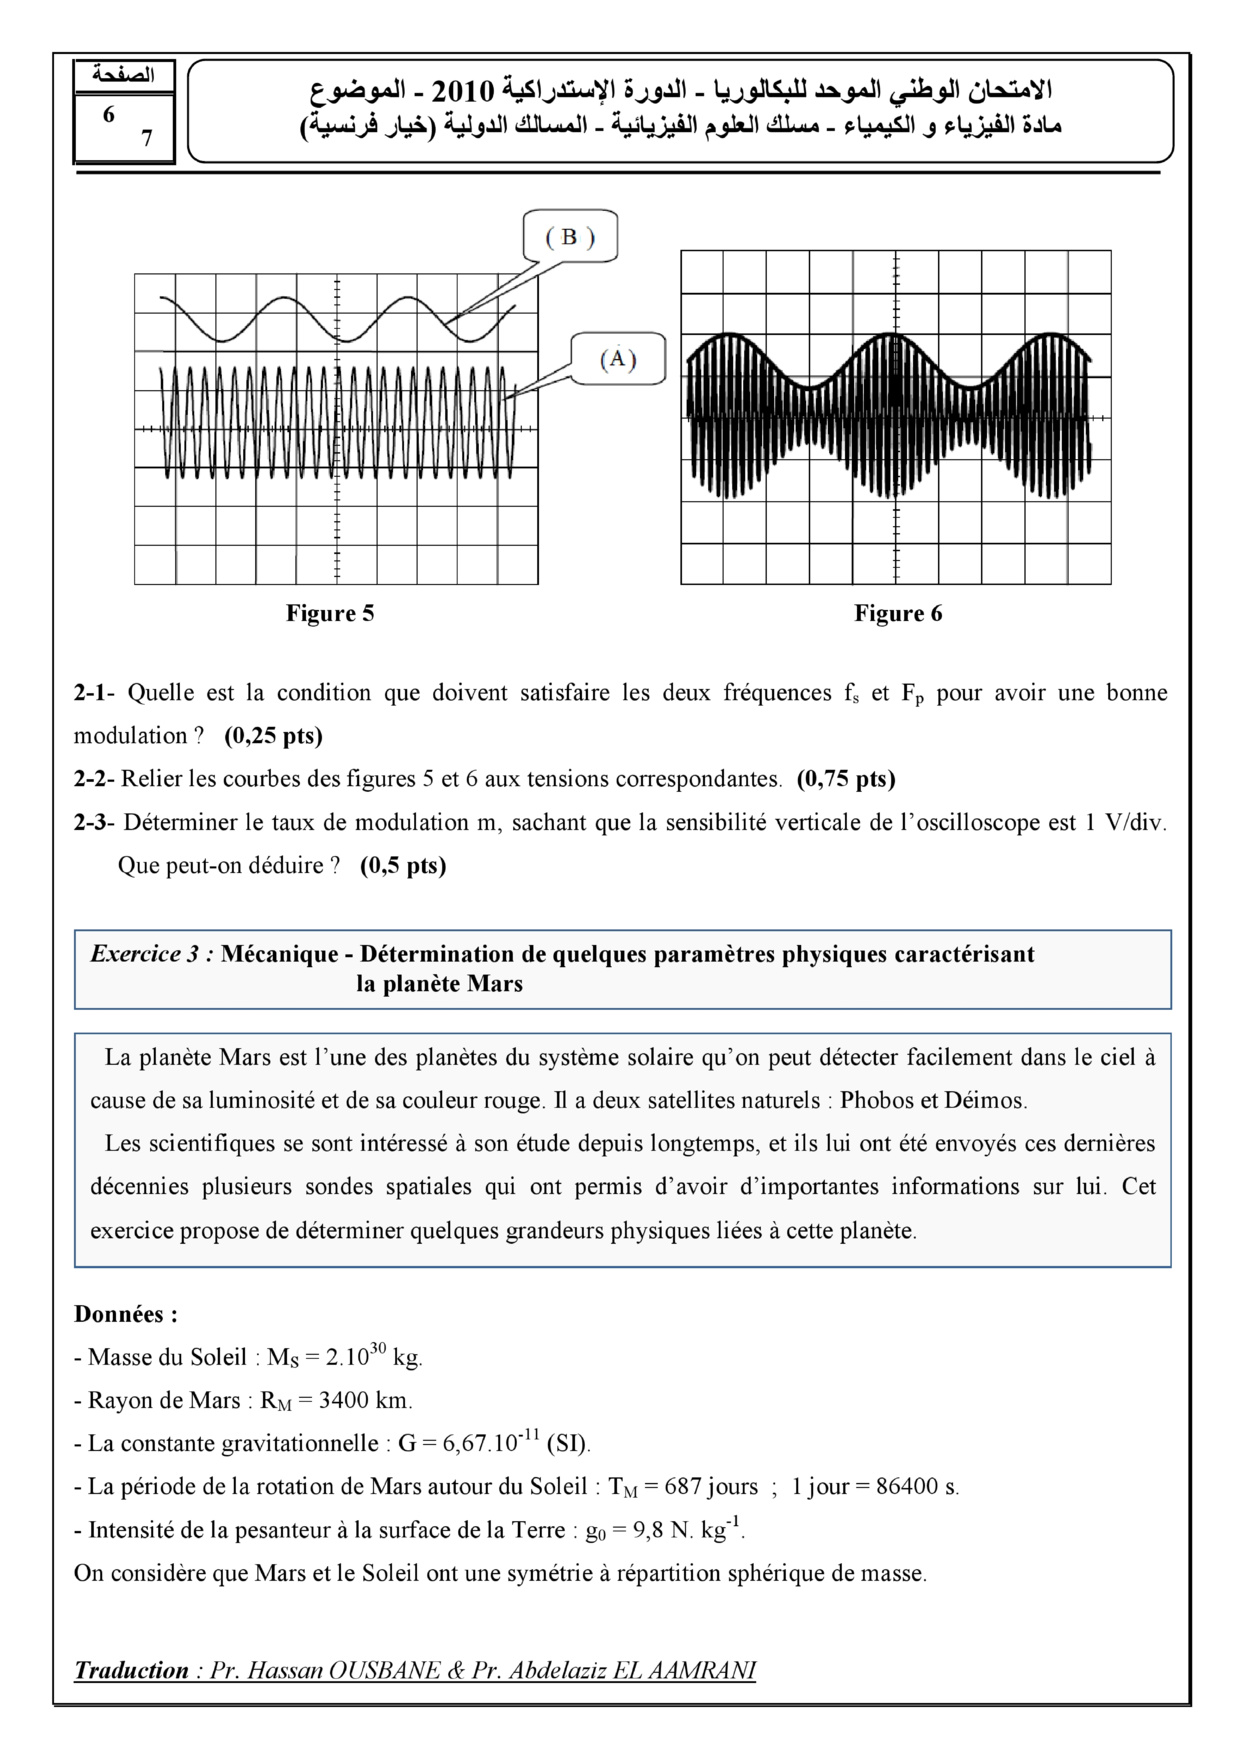 Examen National Physique-Chimie SPC 2010 Rattrapage - Sujet6.jpg